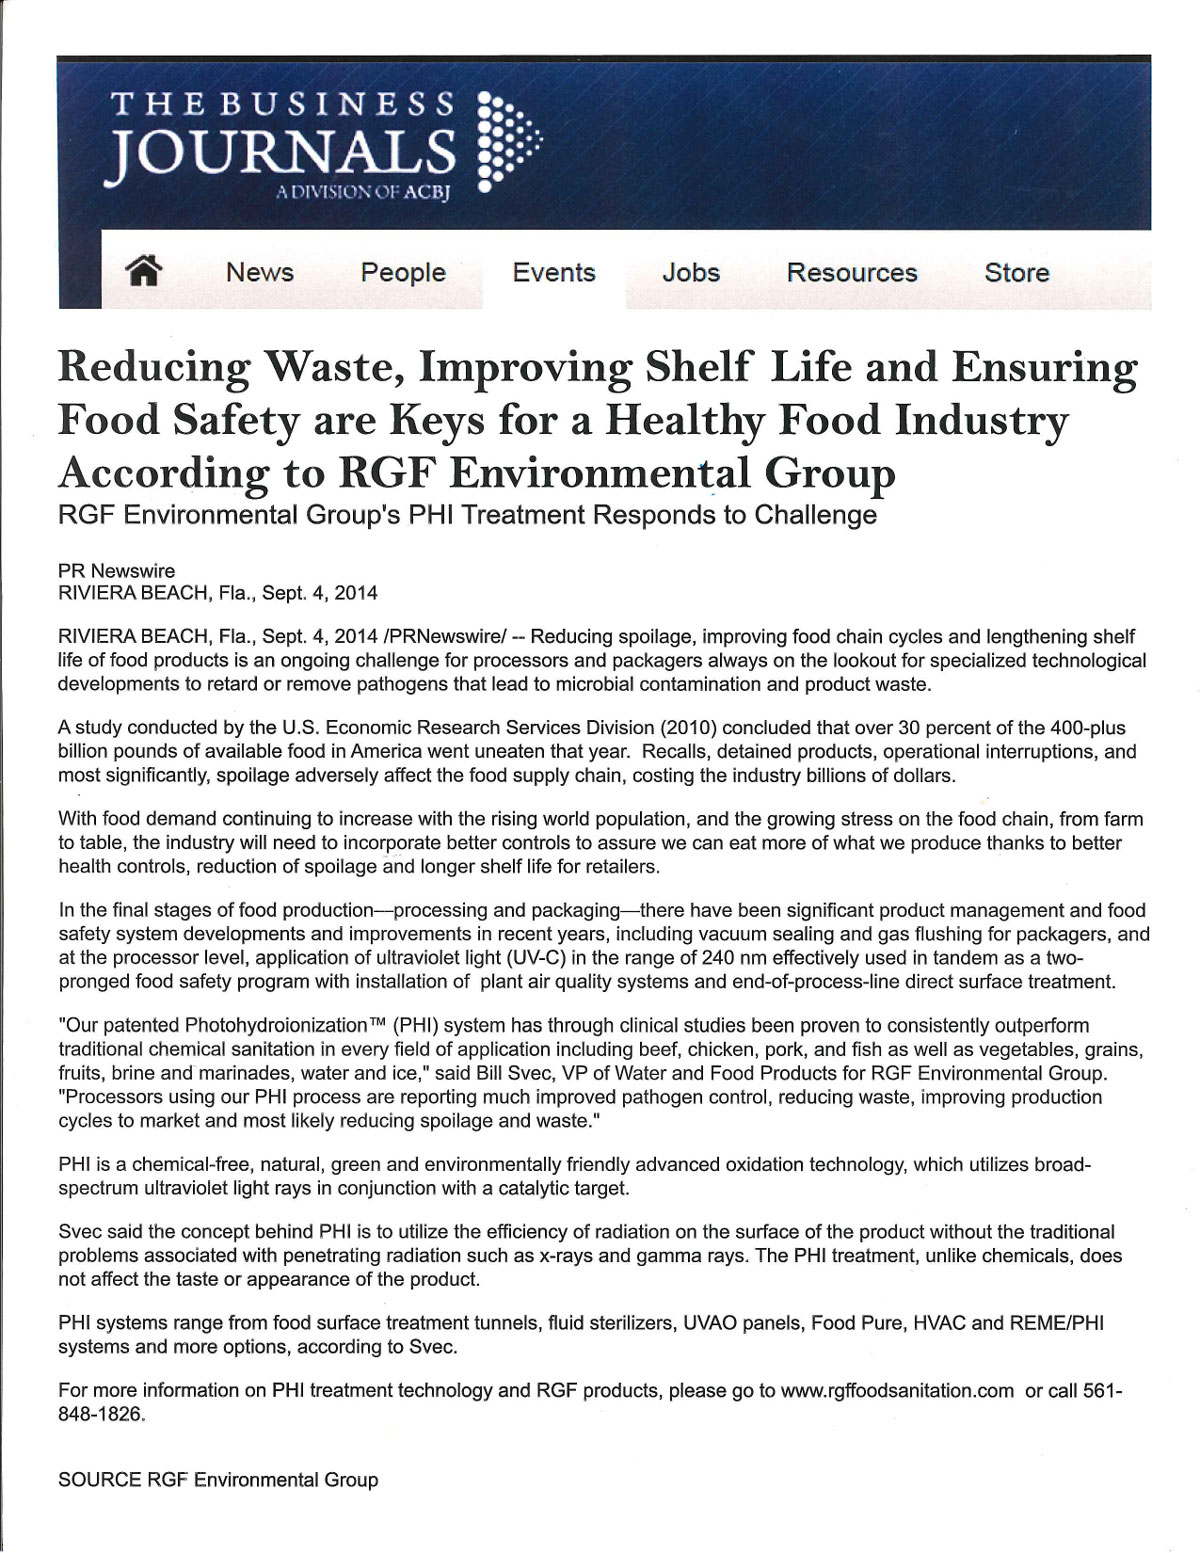 The Business Journals, September 2014 - Food Safety